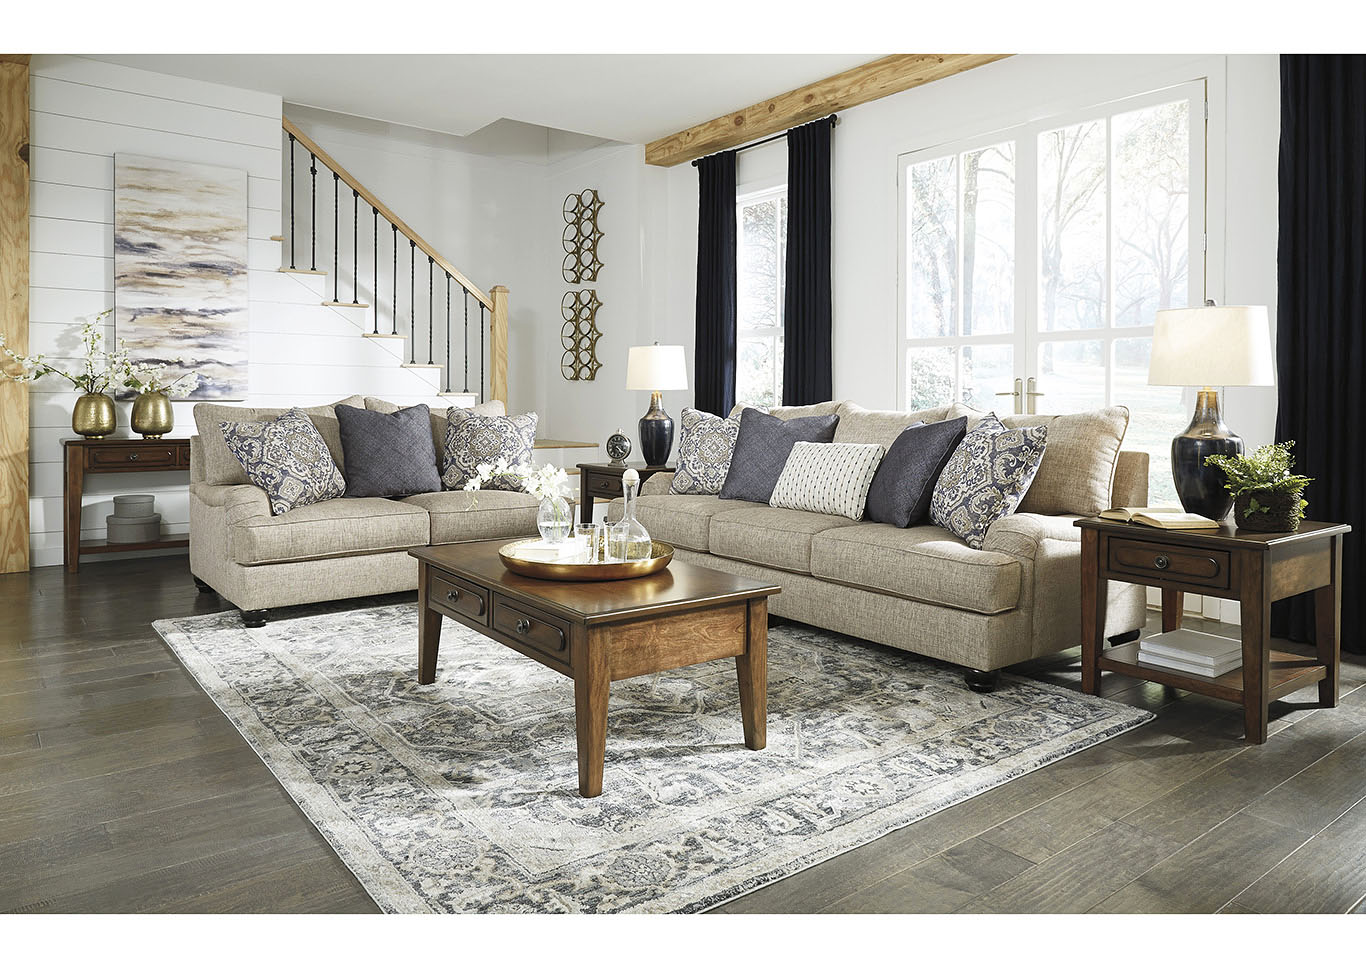 Reardon Gray Sofa and Loveseat,Signature Design By Ashley